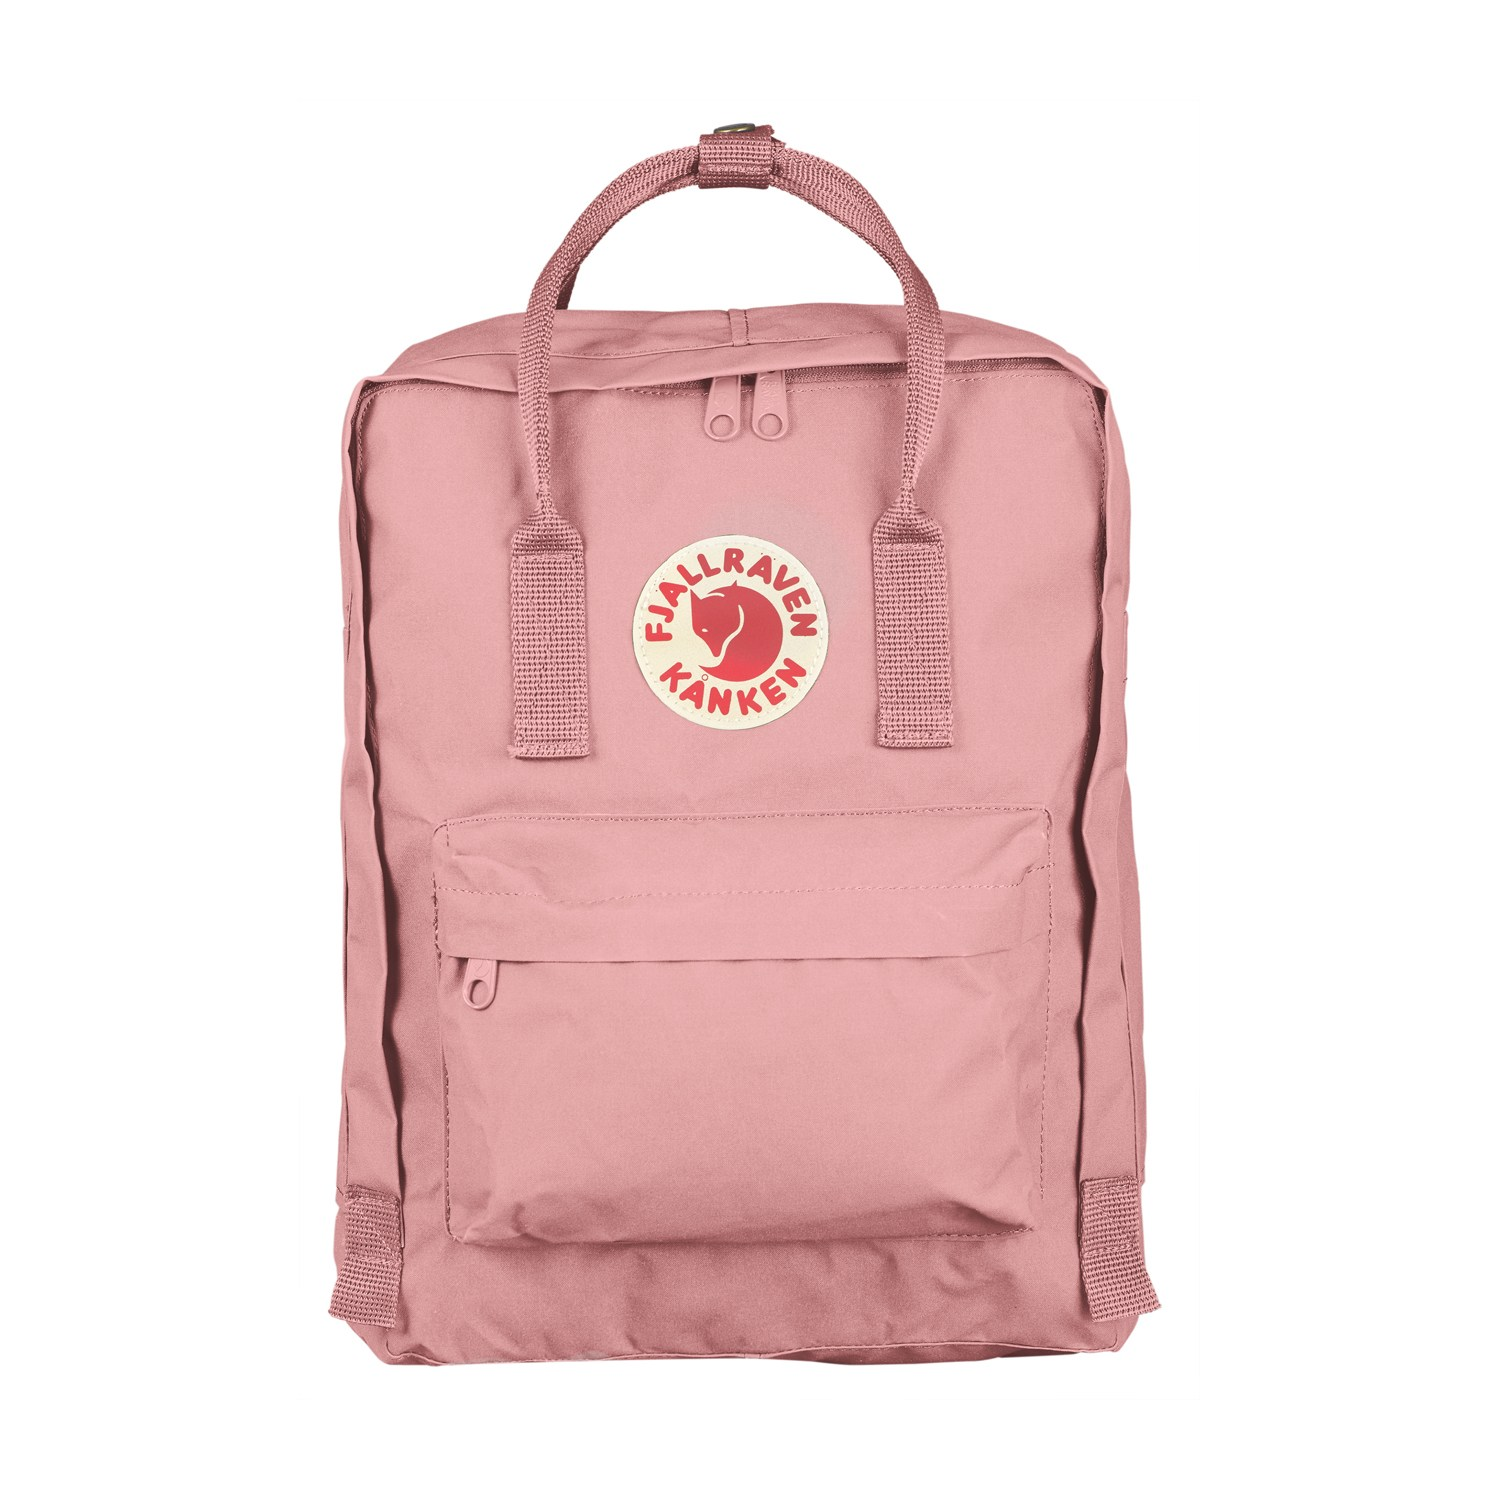 new product 19408 74ad2 Buy Fjallraven Kanken - Pink in Singapore & Malaysia - The Wallet Shop